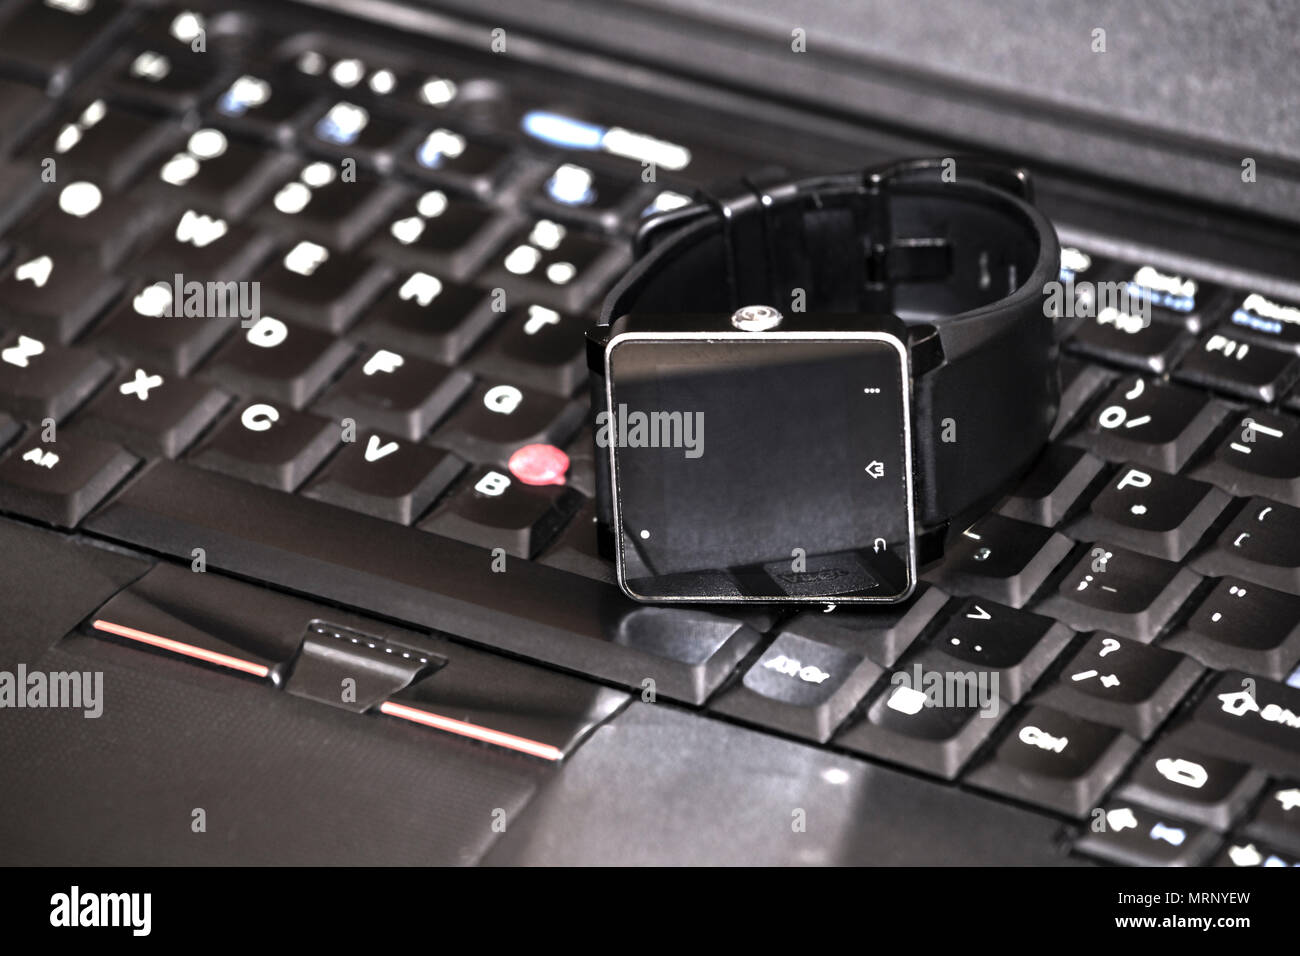 Smart wrist watch laying on a laptop keyboard. Abstract: always stay connected to internet and media. - Stock Image